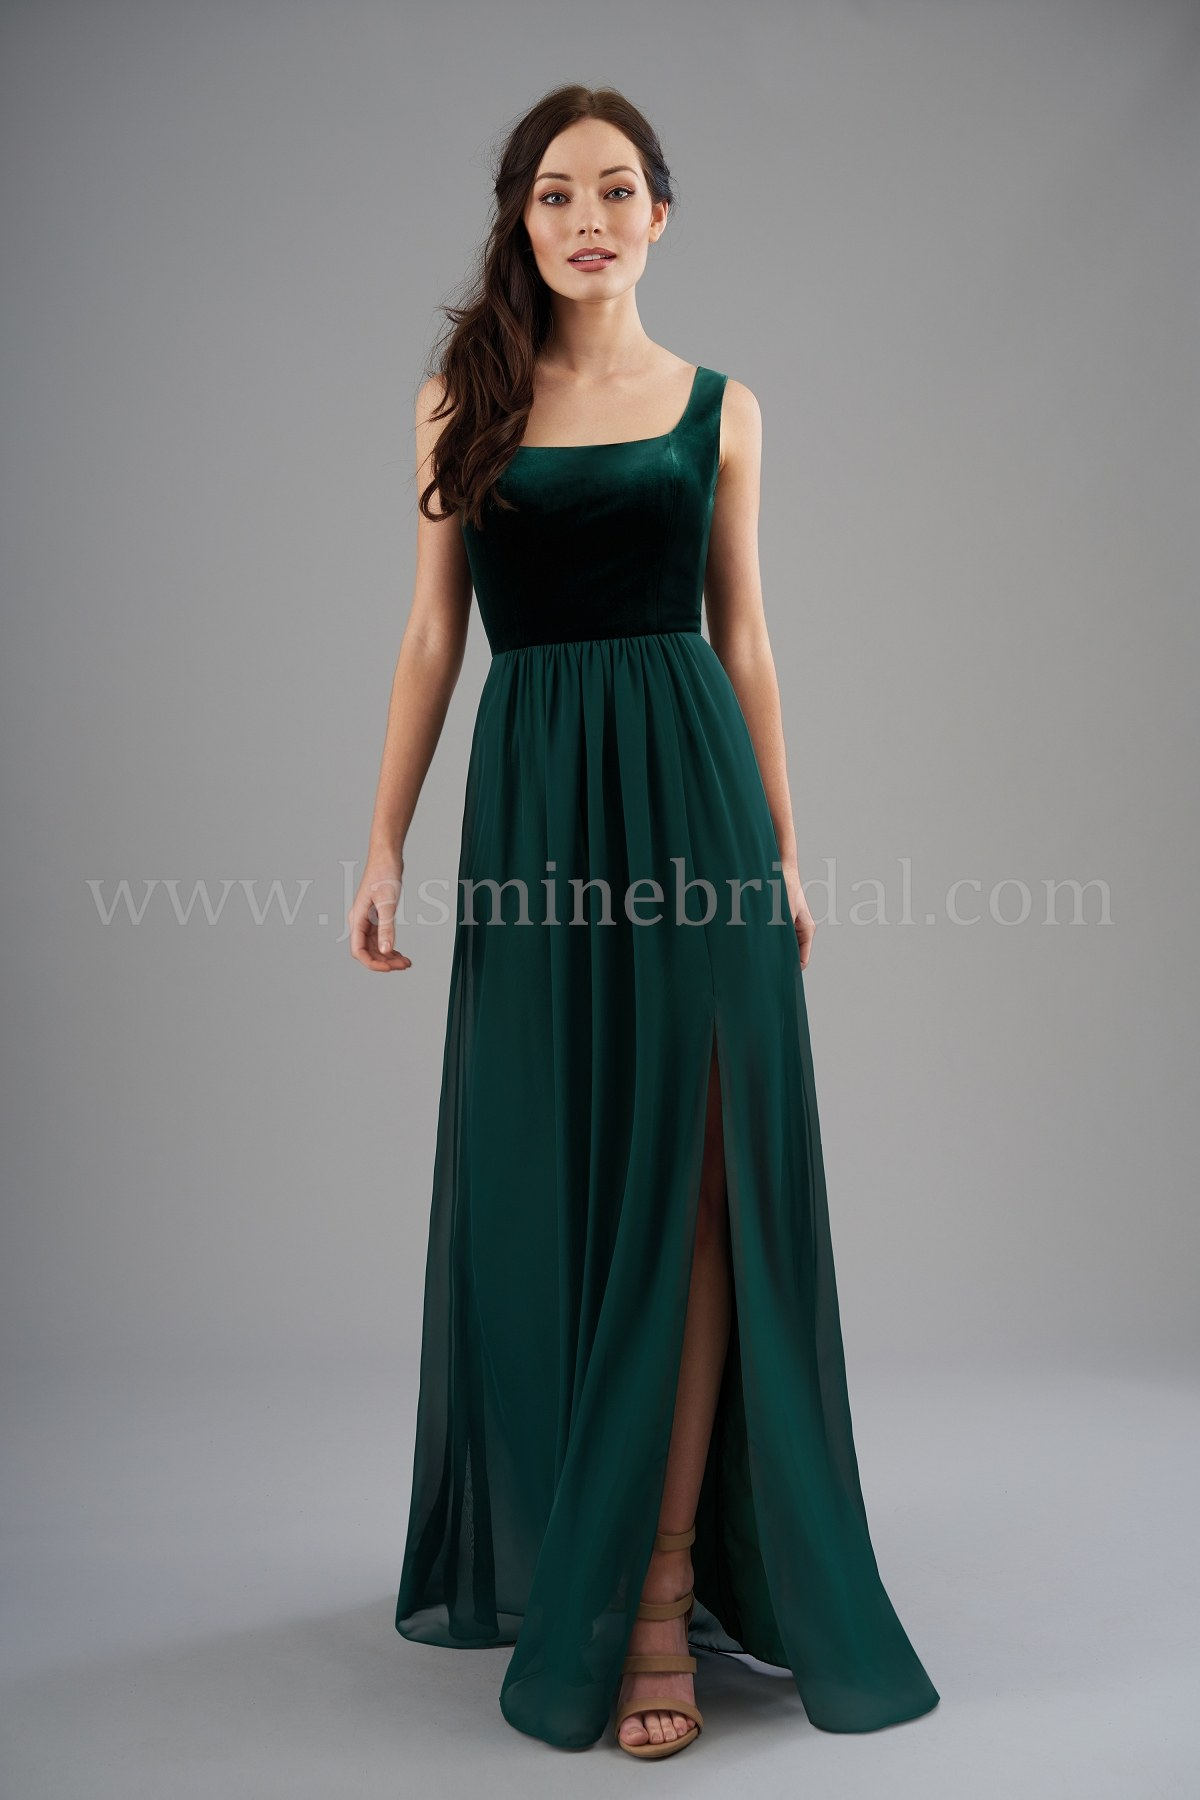 bridesmaid-dresses-B203055-F